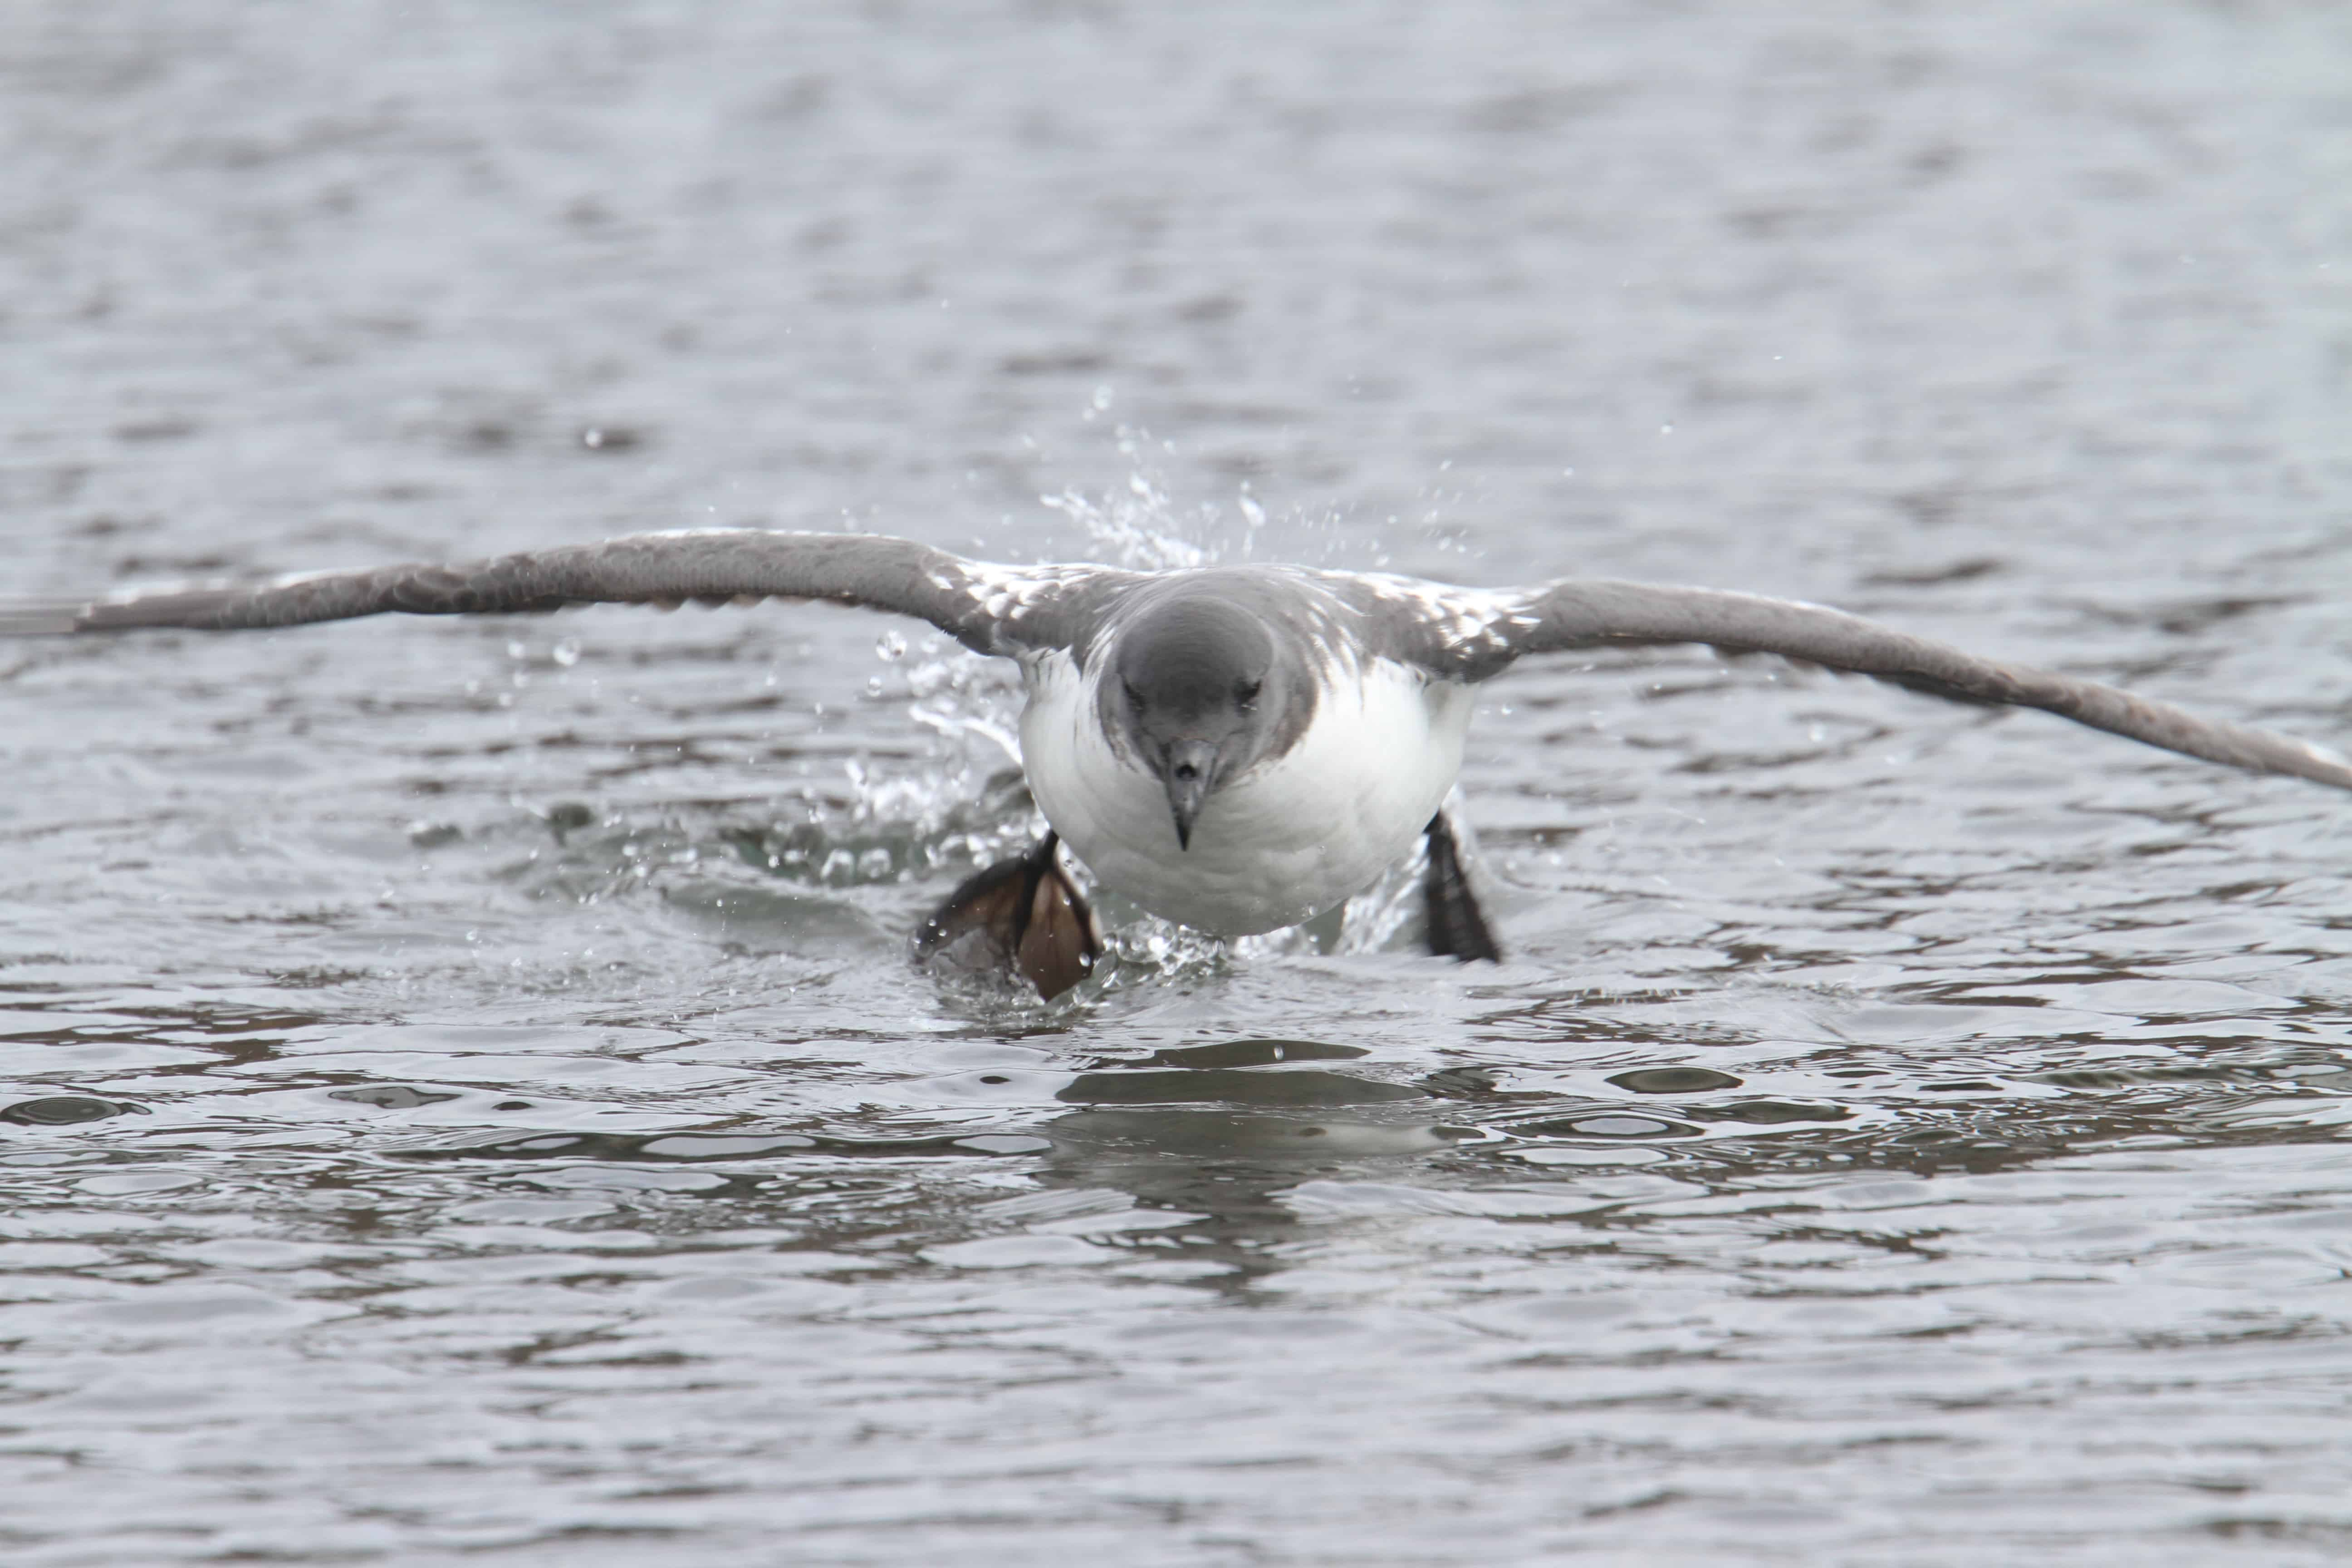 Cape petrel takes off from the lagoon in Deception Island, South Shetland Islands. Copyright: Dr Mike Pienkowski